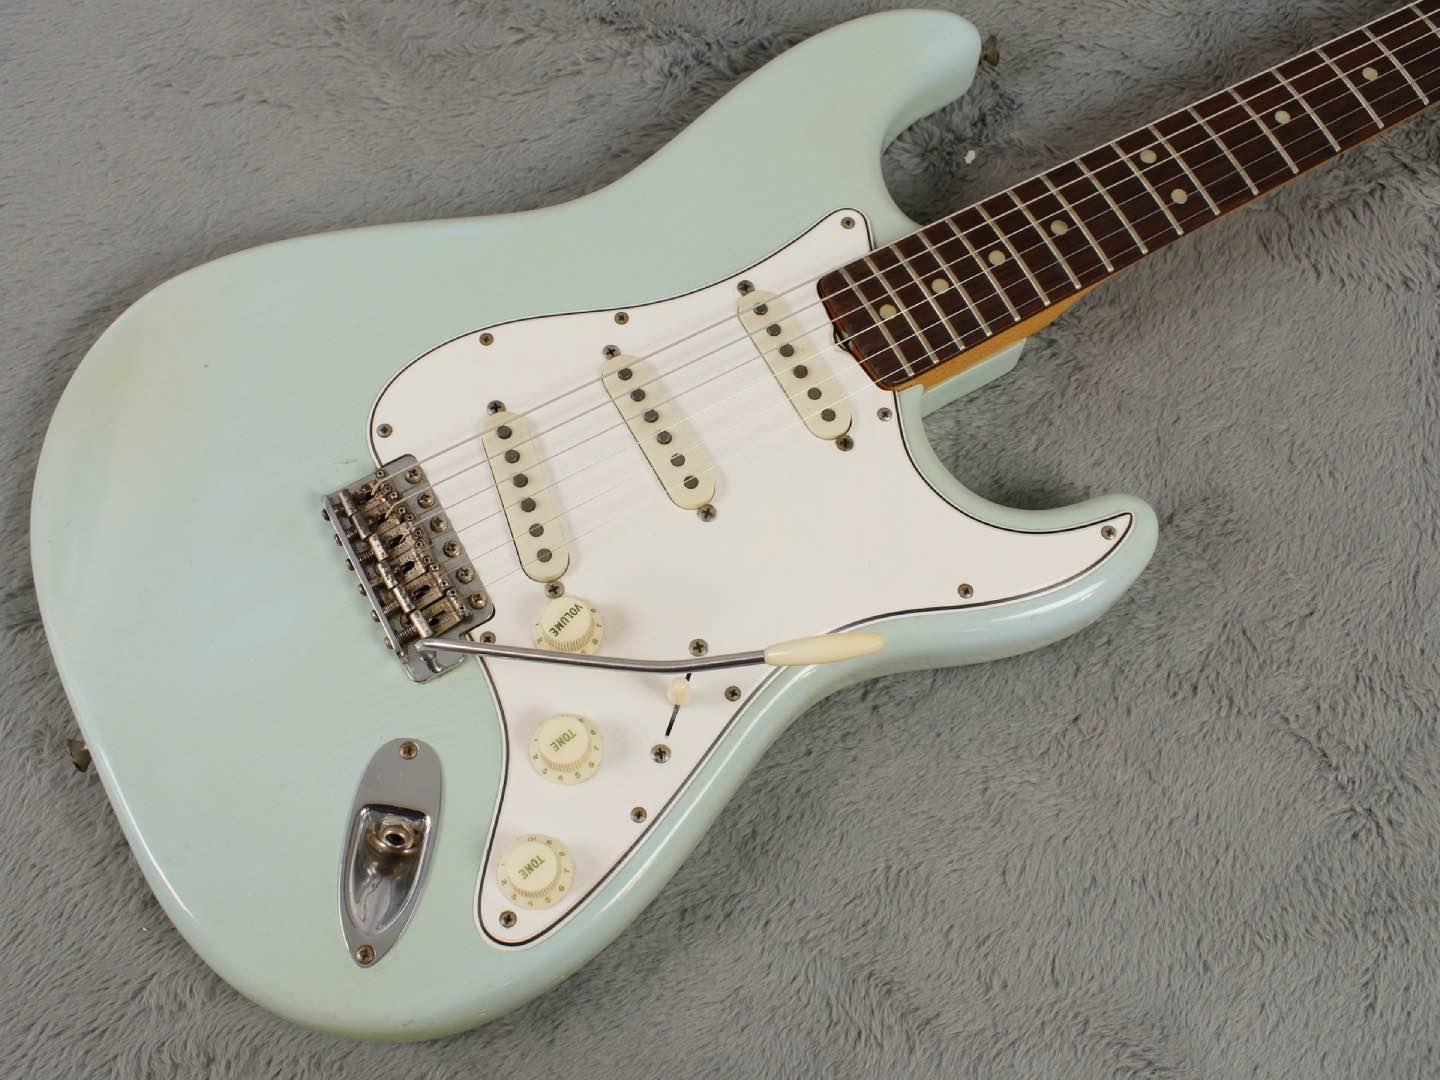 1965 near MINT Fender Stratocaster Daphne Blue + OHSC Tags